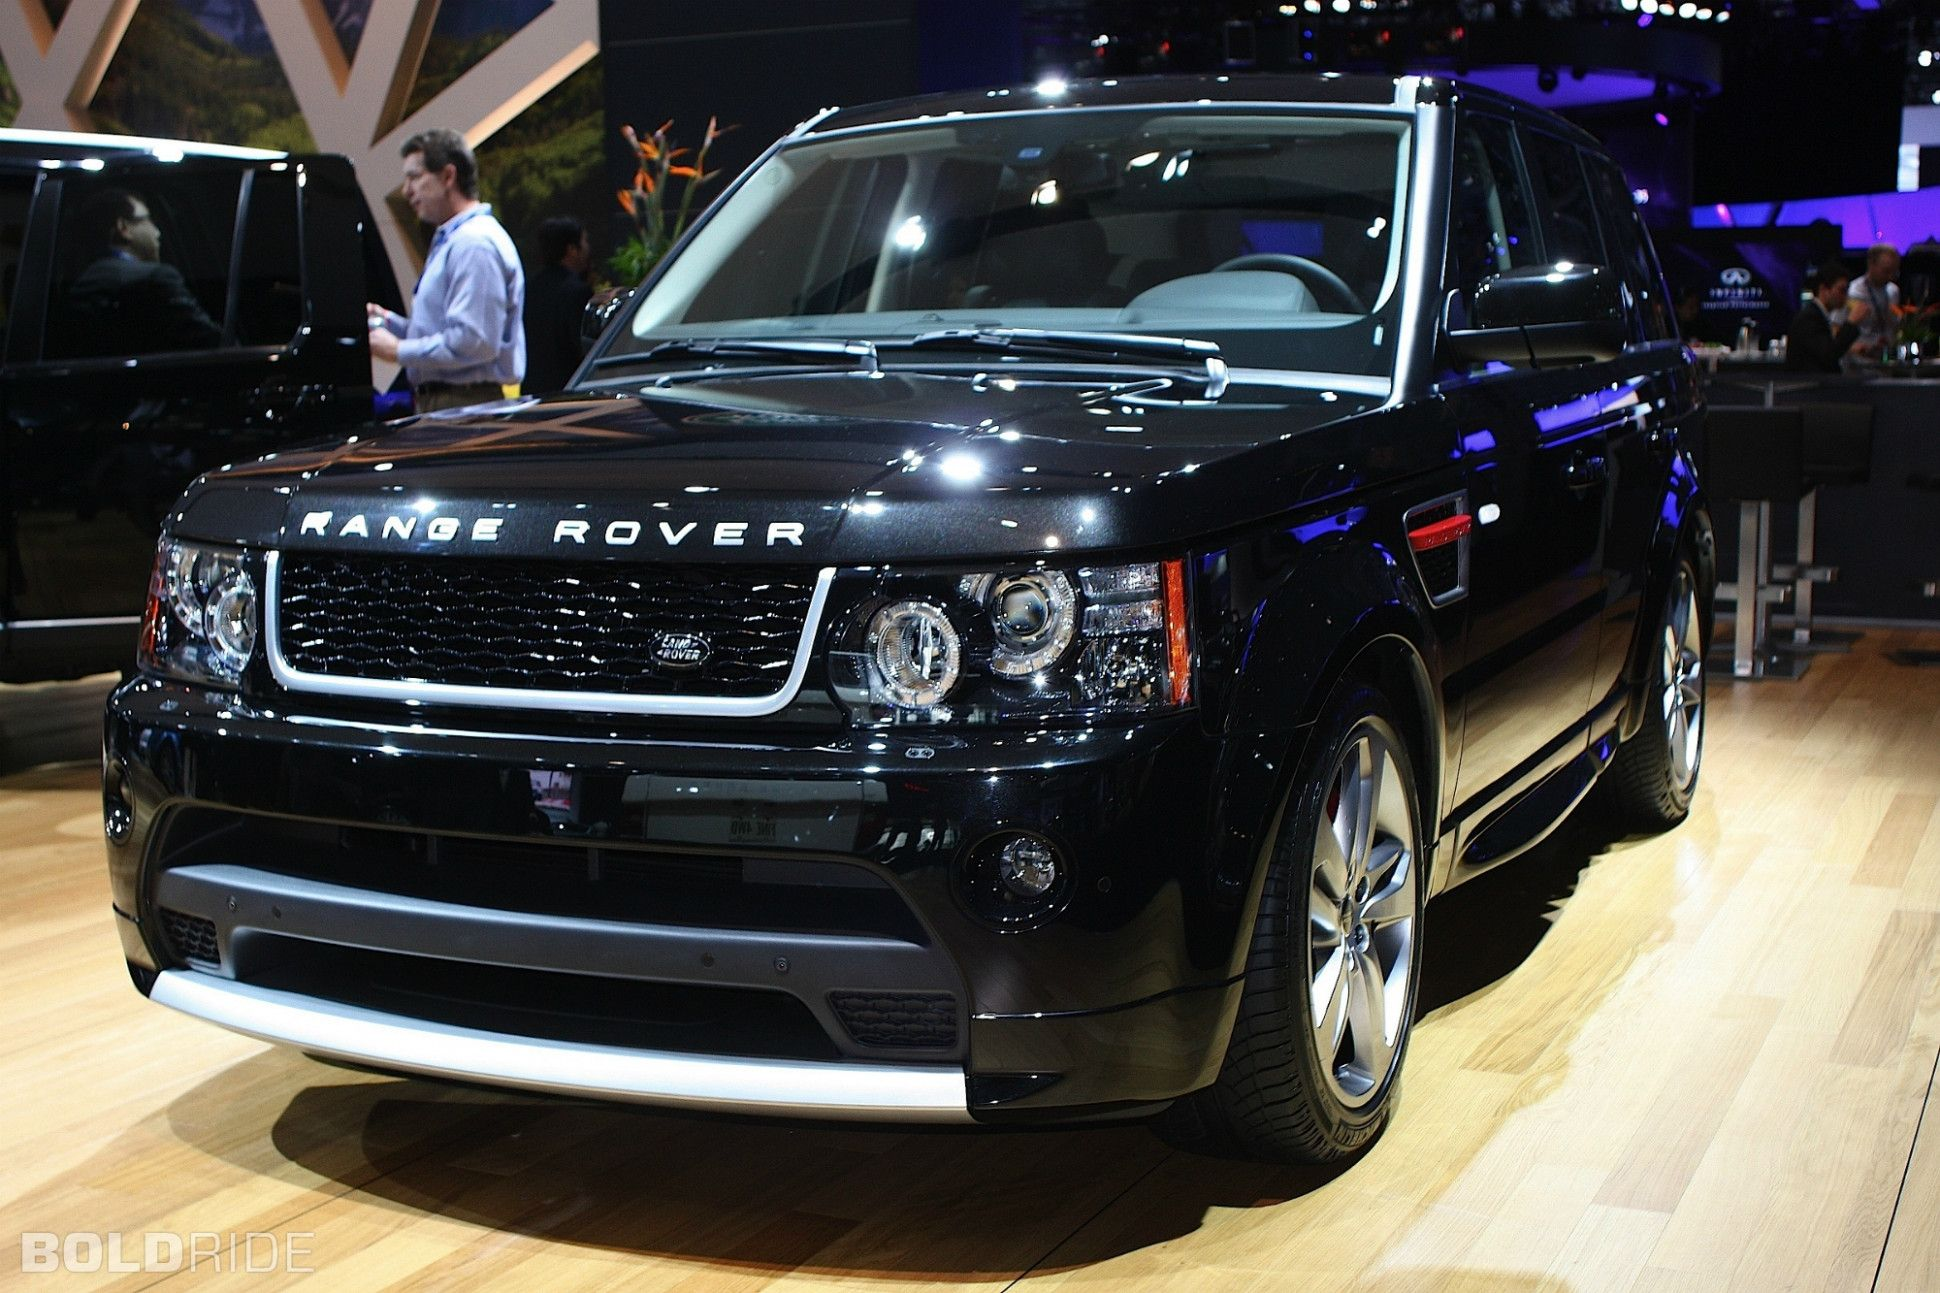 2012 Land Rover Range Rover Sport Hse Vin Lookup 2012 Land Rover Range Rover Sport Hse Range Rover Sport Range Rover Land Rover